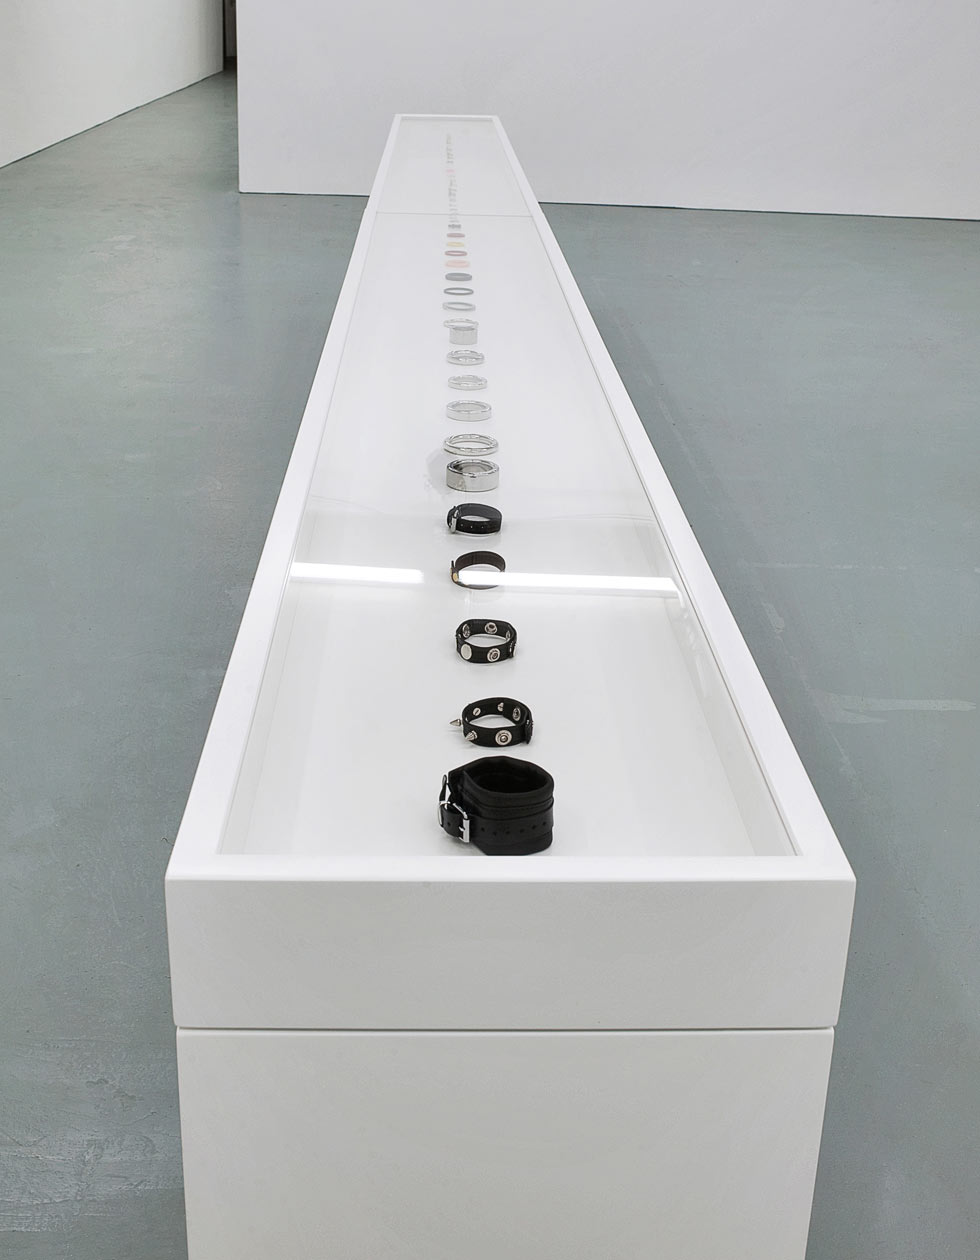 Jonathan Ellery, art, ring cabinet, The Human Condition, 2011, exhibition, Browns Editions and Browns Design